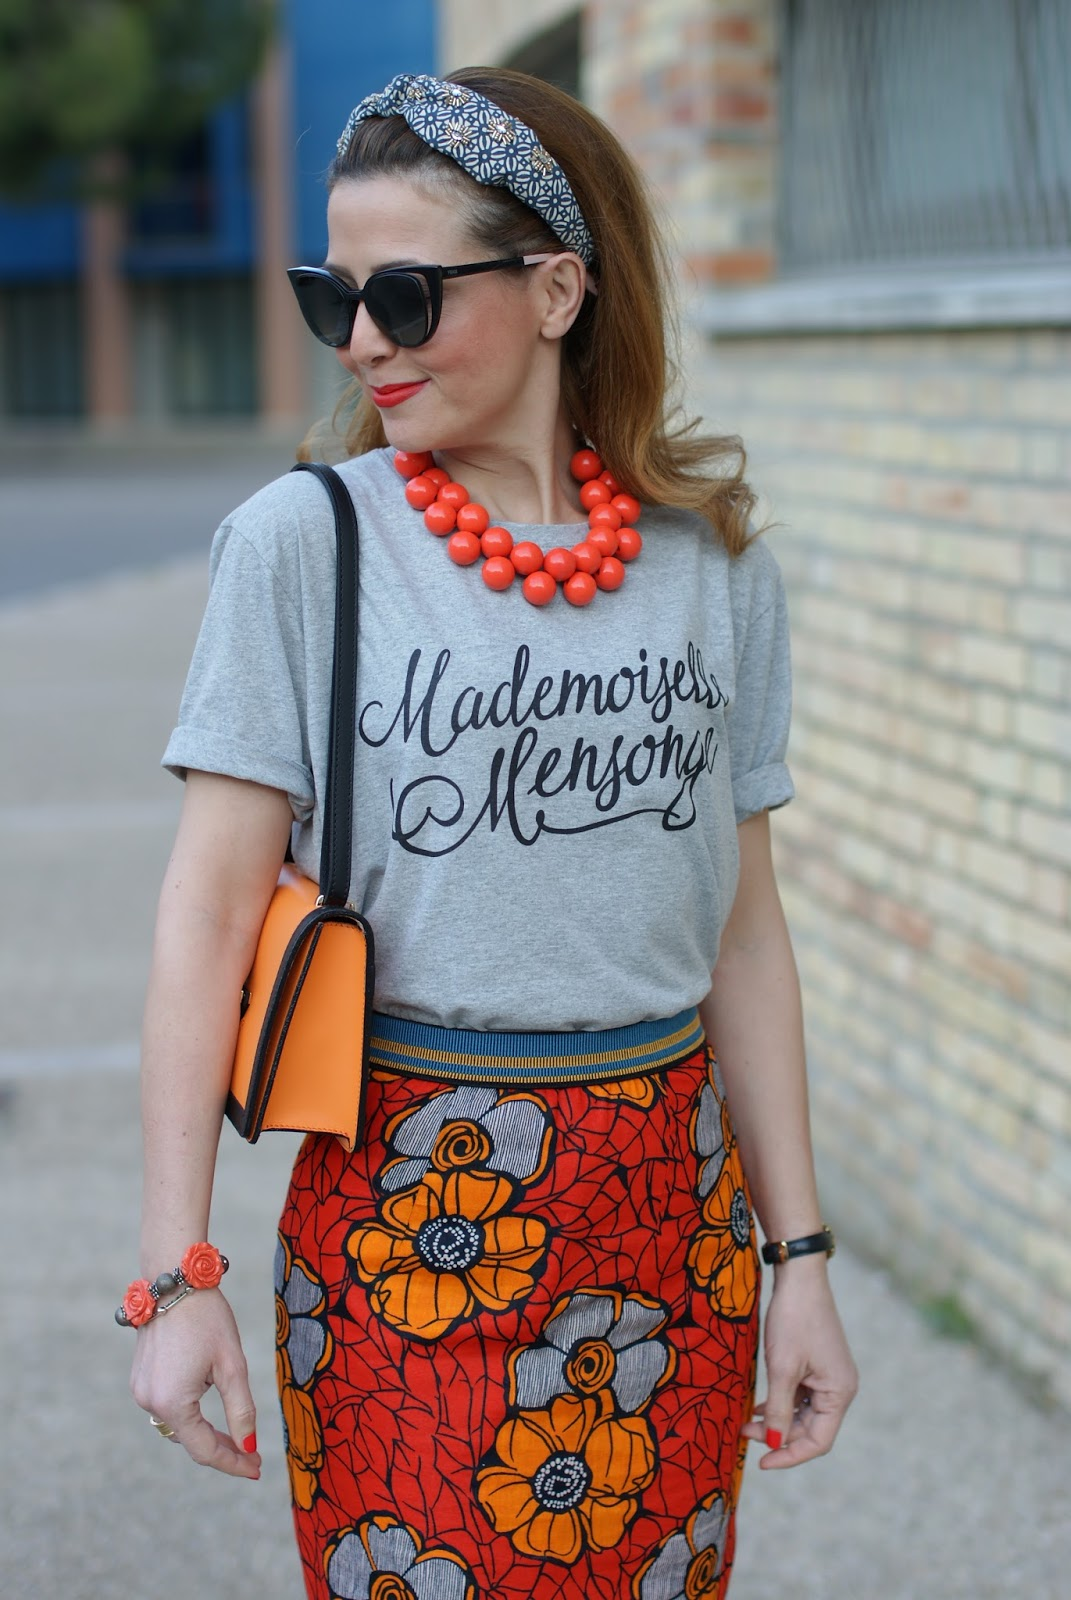 89lies street style, Eightynine Lies mademoiselle mensonge t-shirt with Rose a Pois ethnic pencil skirt on Fashion and Cookies fashion blog, fashion blogger style